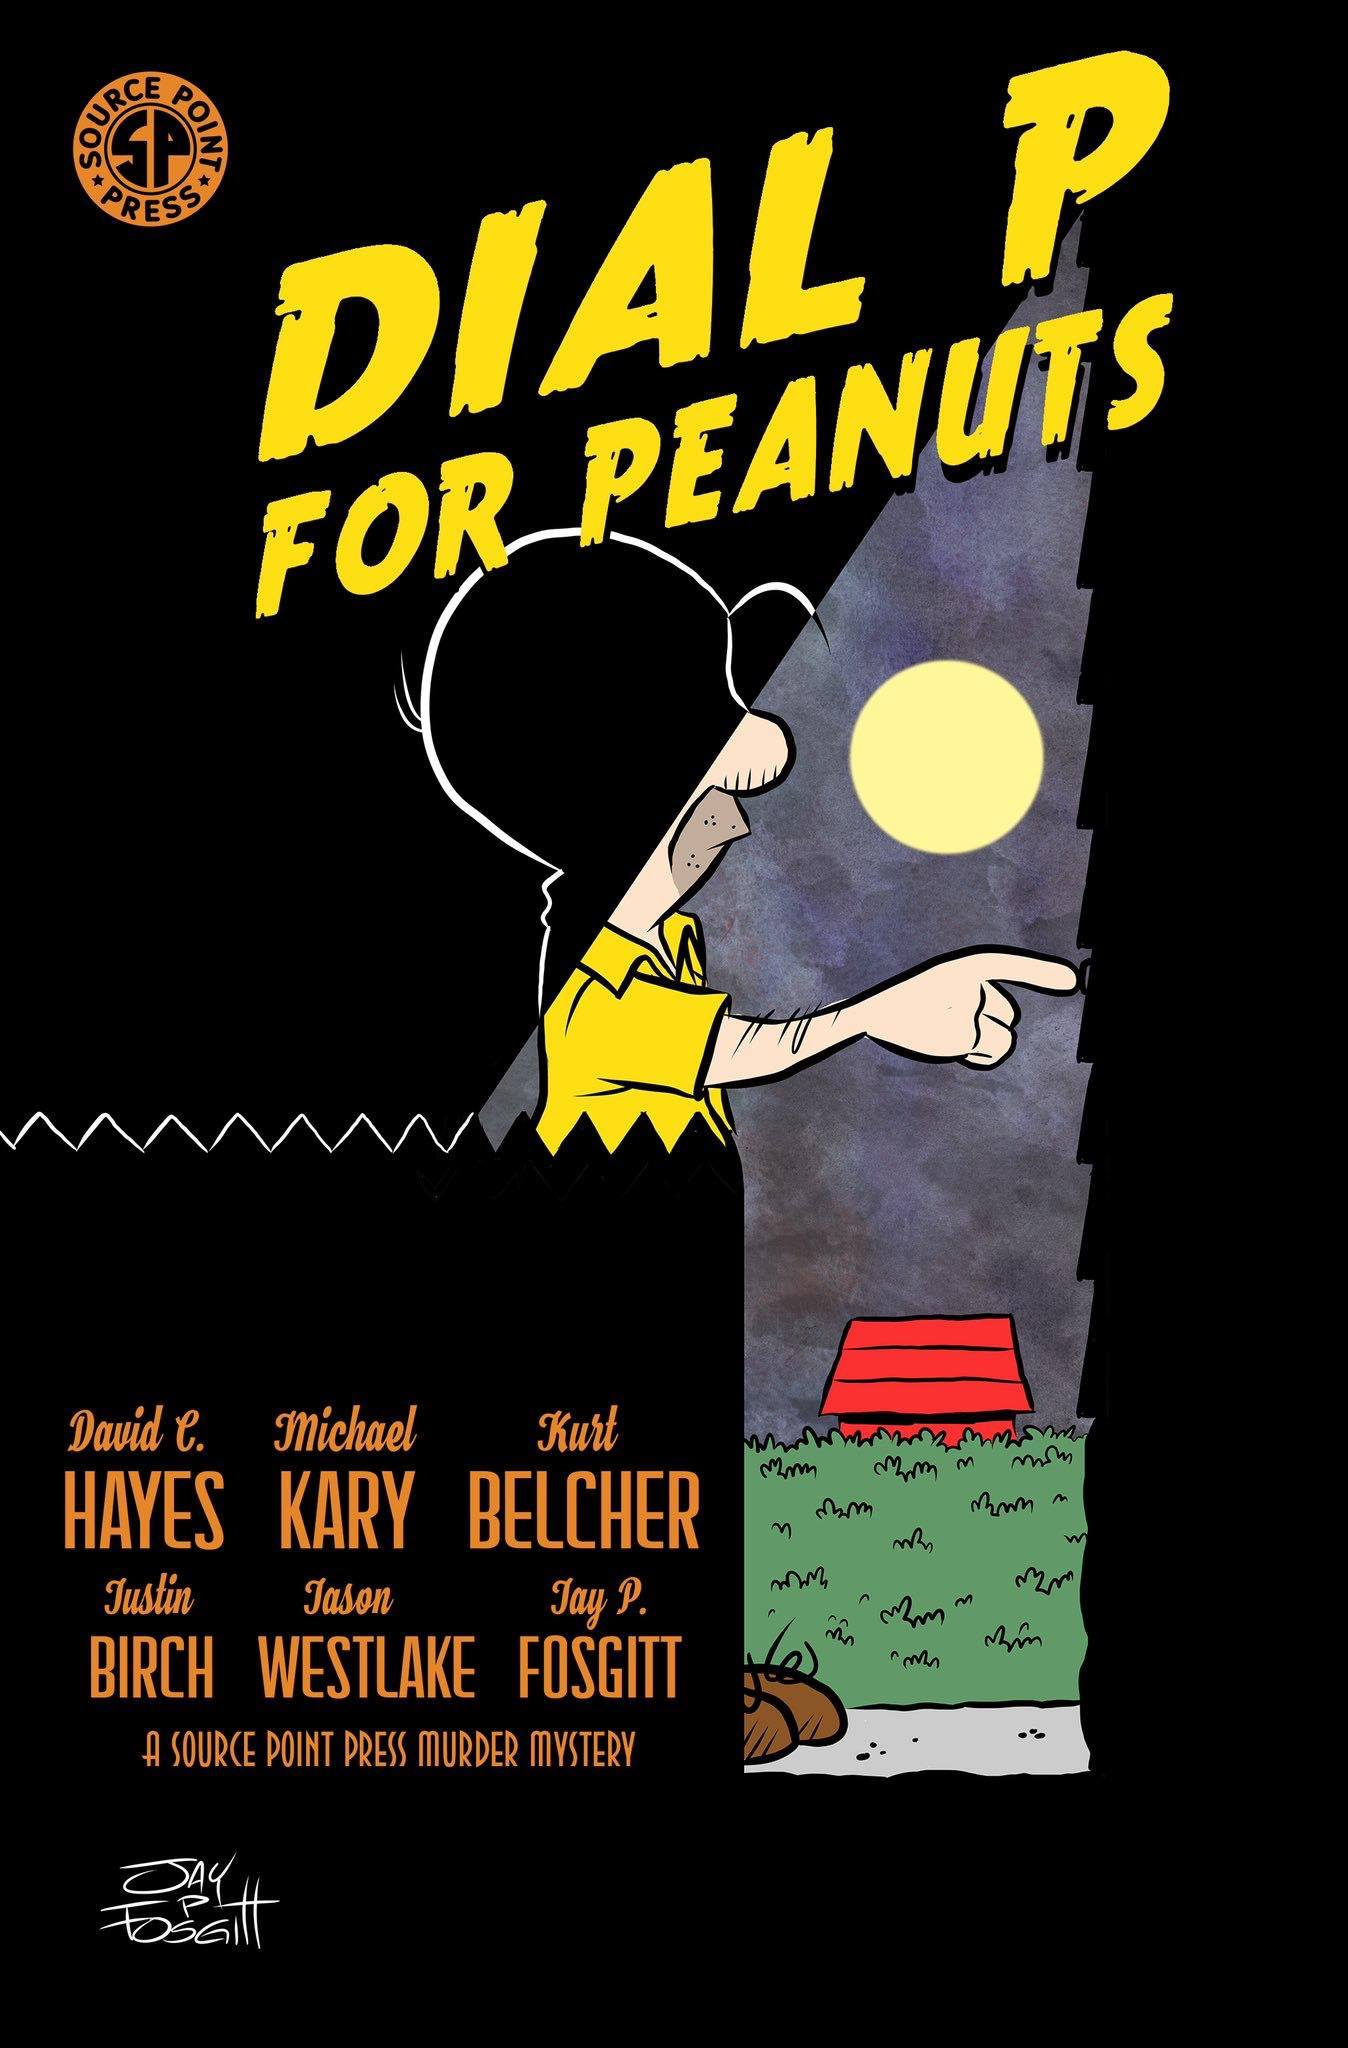 Dial P for Peanuts New Murder Mystery Graphic Novel